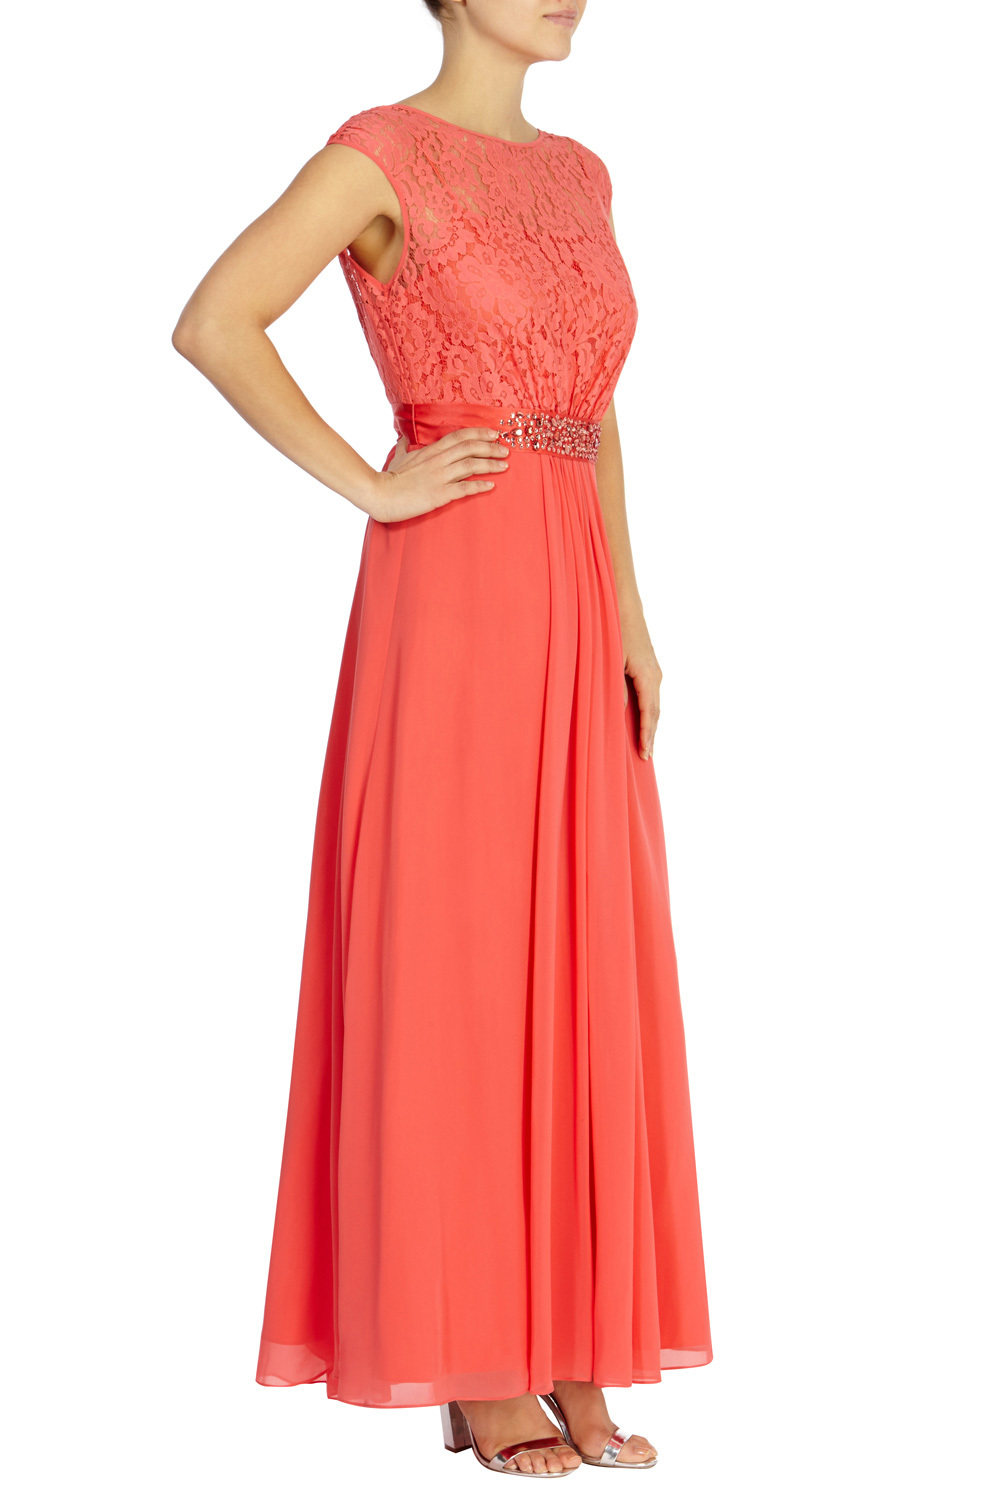 Lori Lee Lace Maxi Dress - sleeve style: capped; pattern: plain; style: maxi dress; predominant colour: coral; occasions: evening; length: floor length; fit: body skimming; fibres: polyester/polyamide - 100%; neckline: crew; sleeve length: short sleeve; texture group: sheer fabrics/chiffon/organza etc.; pattern type: fabric; embellishment: lace; season: s/s 2016; wardrobe: event; embellishment location: waist